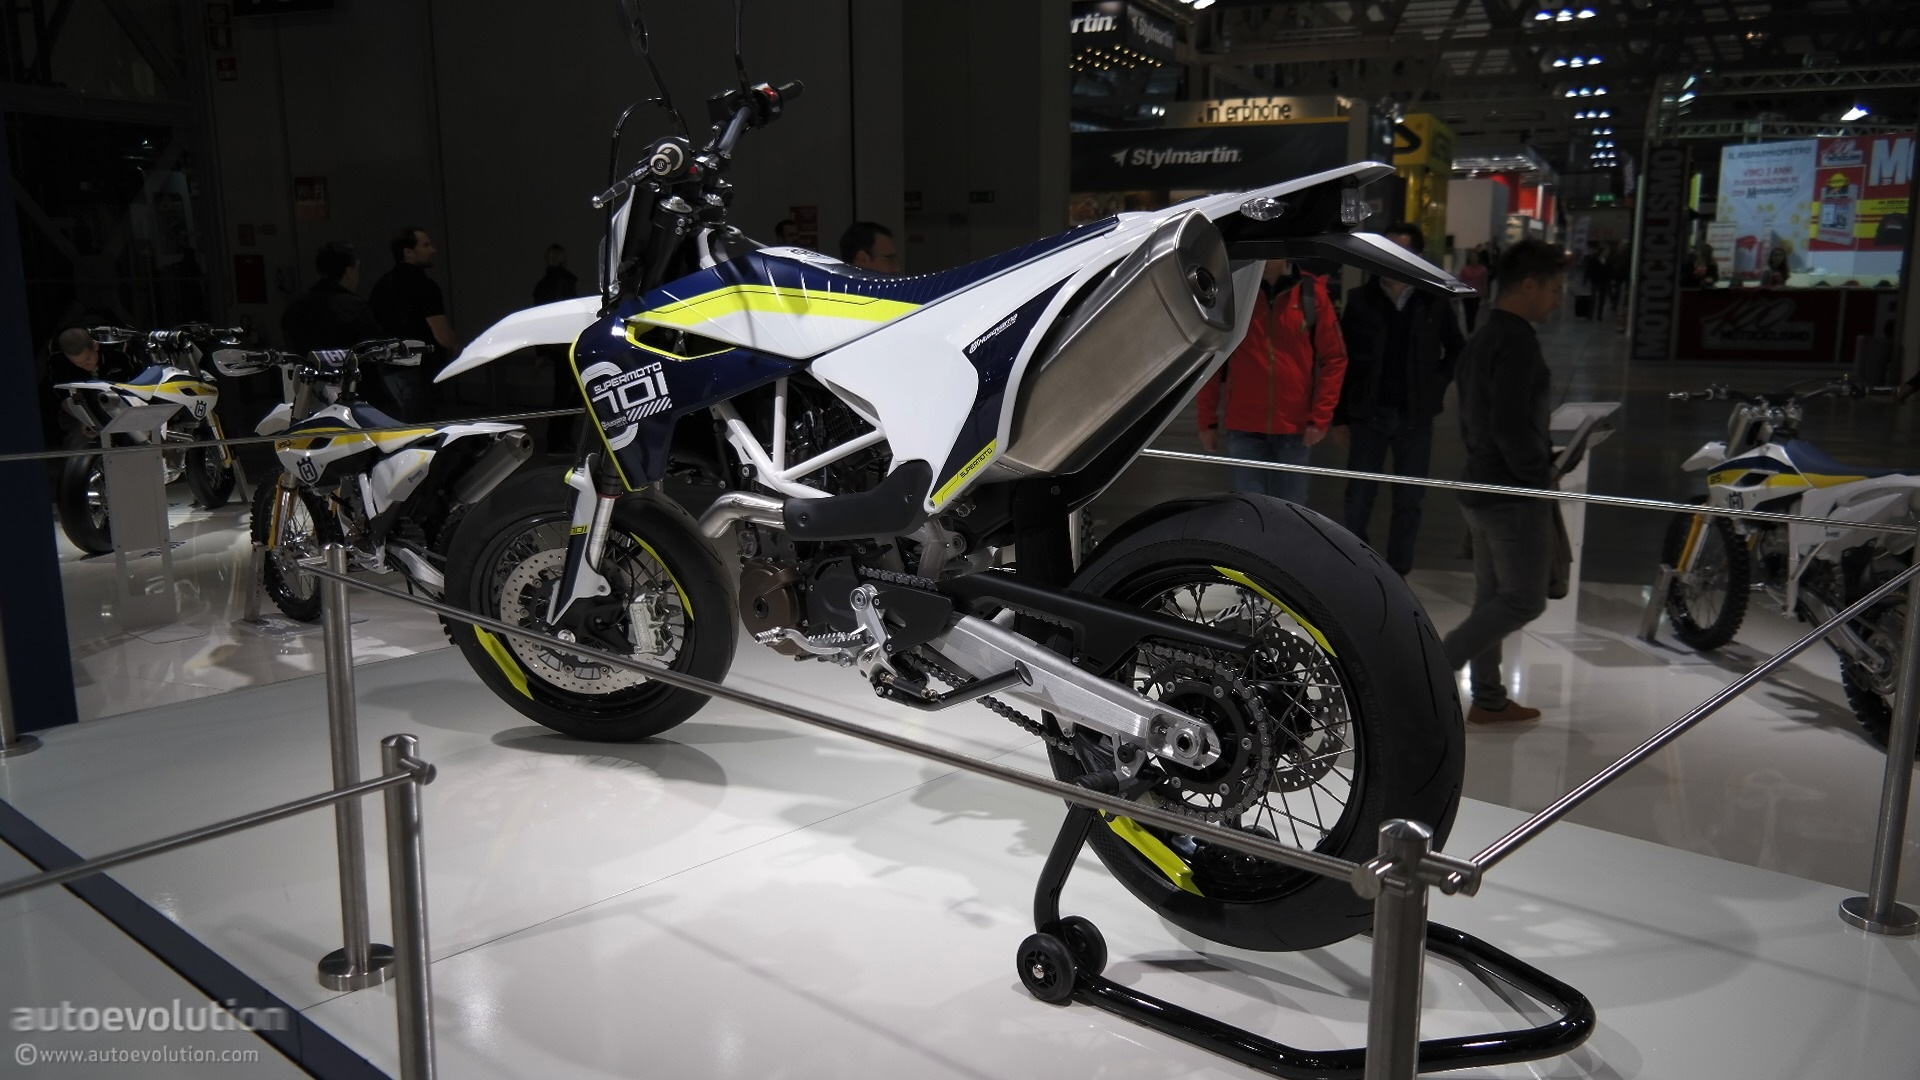 Car And Bike Live Wallpaper 2015 Husqvarna 701 Supermoto Celebrates Brand S Return To